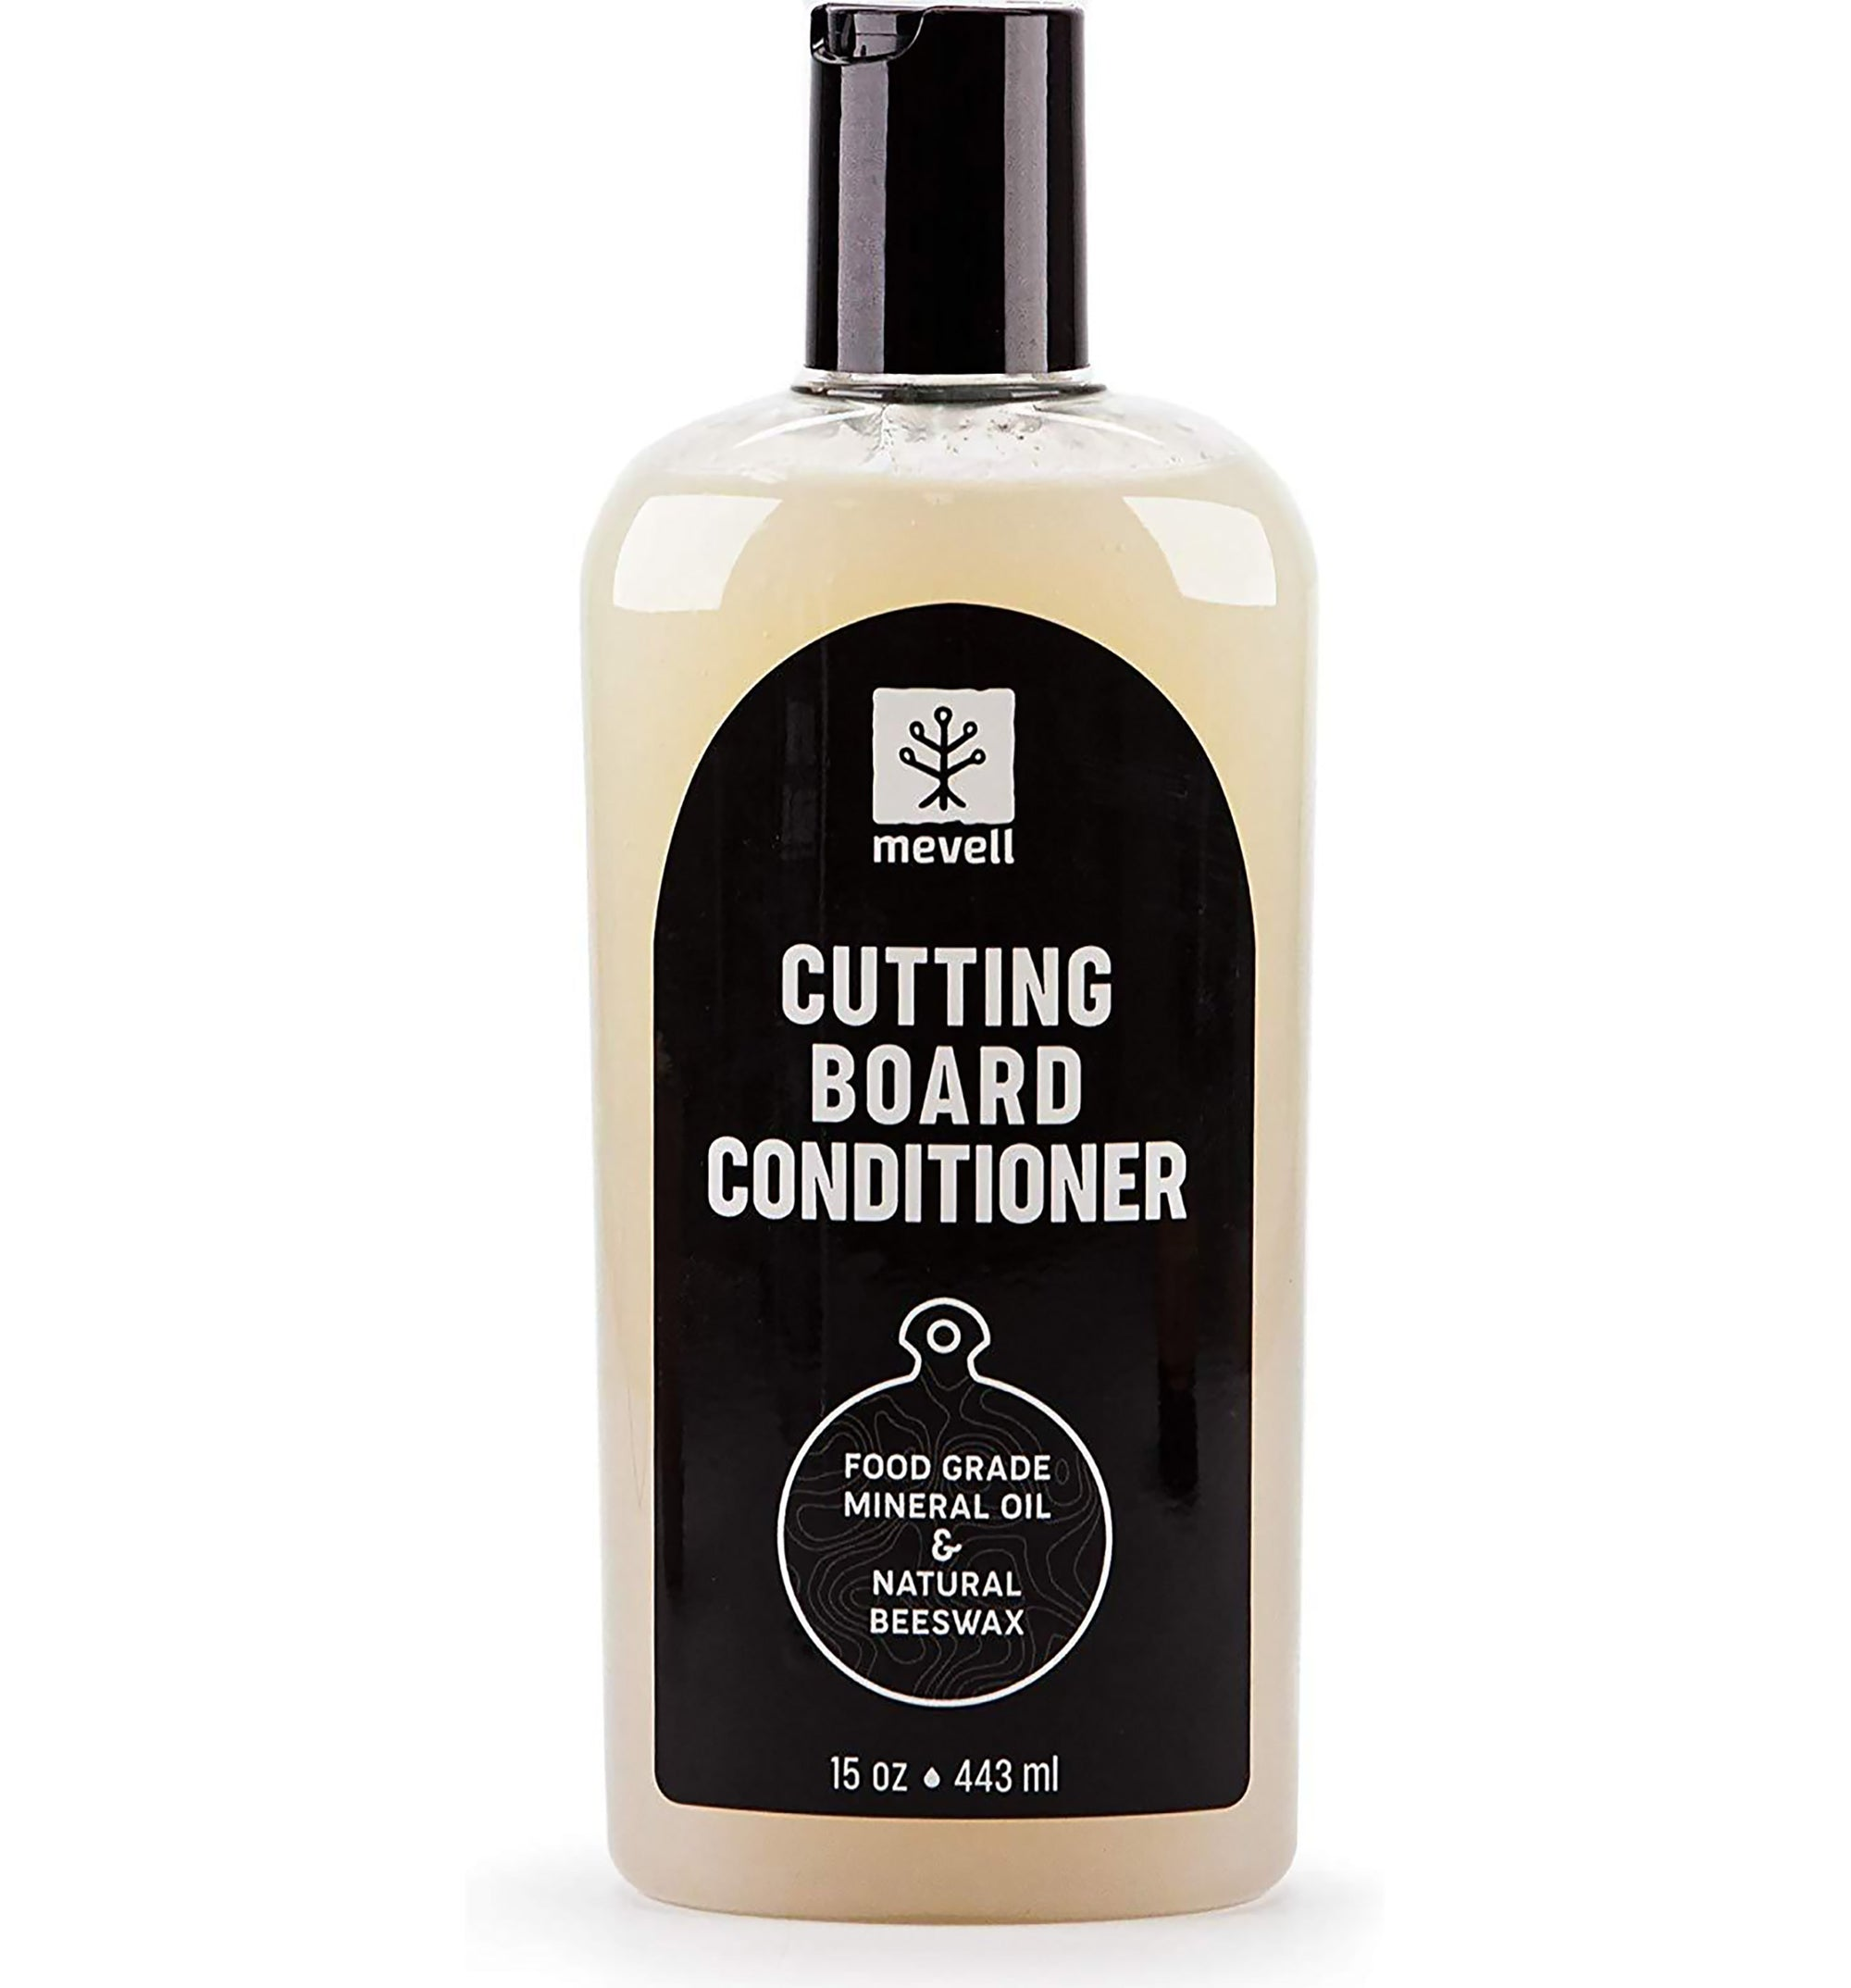 Cutting Board Conditioner